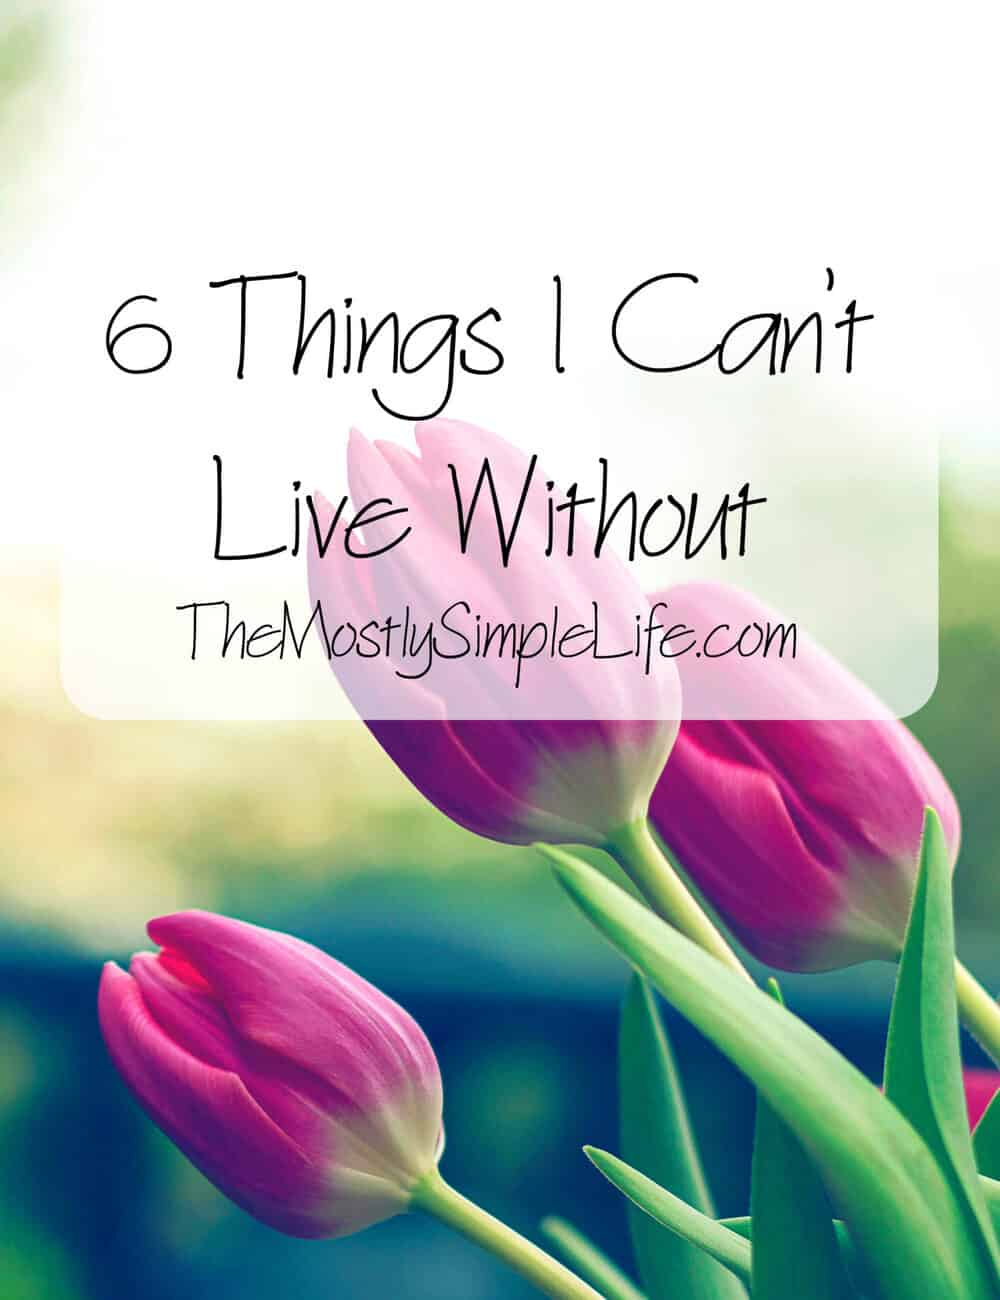 6 Things I Can't Live Without